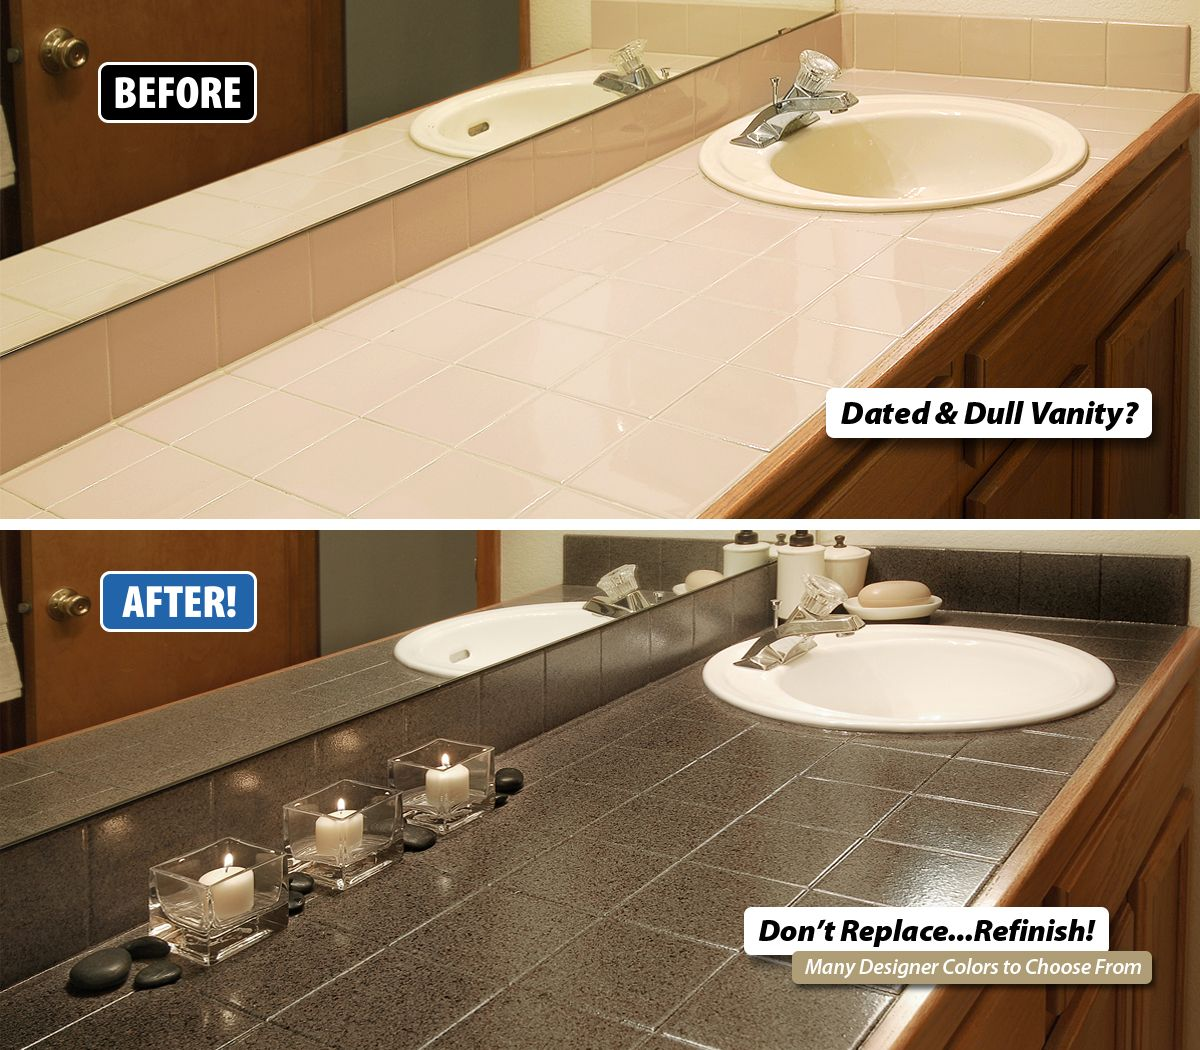 Do You Have A Dated And Dull Vanity Whether It S Tile Corian Laminate Or Tile Miracl Small Bathroom Tiles Small Bathroom Floor Plans Full Bathroom Remodel